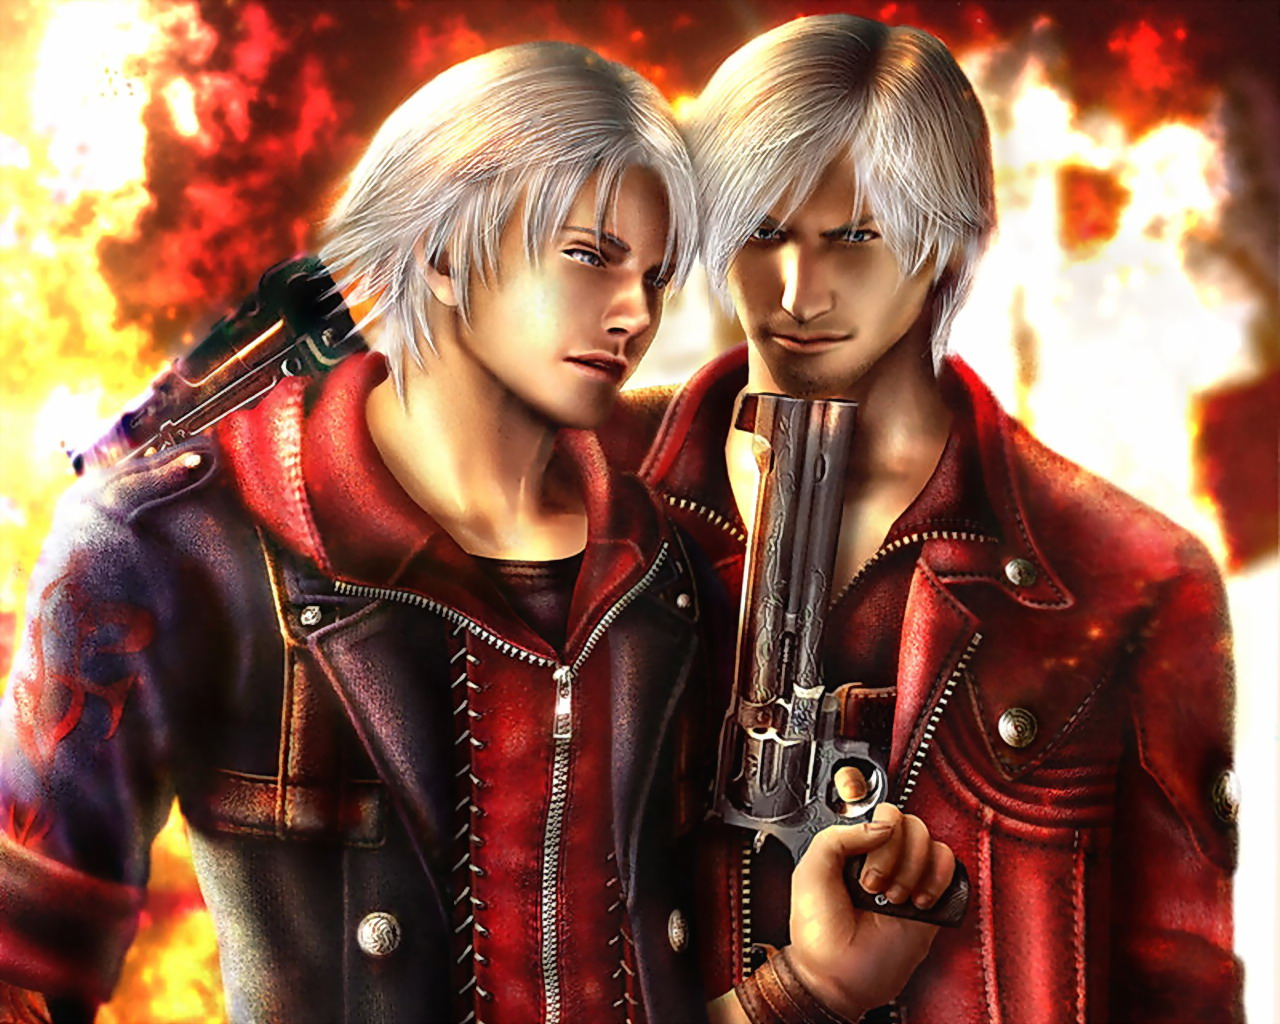 Wallpapers Dante Devil May Cry Devil May Cry 4 Games